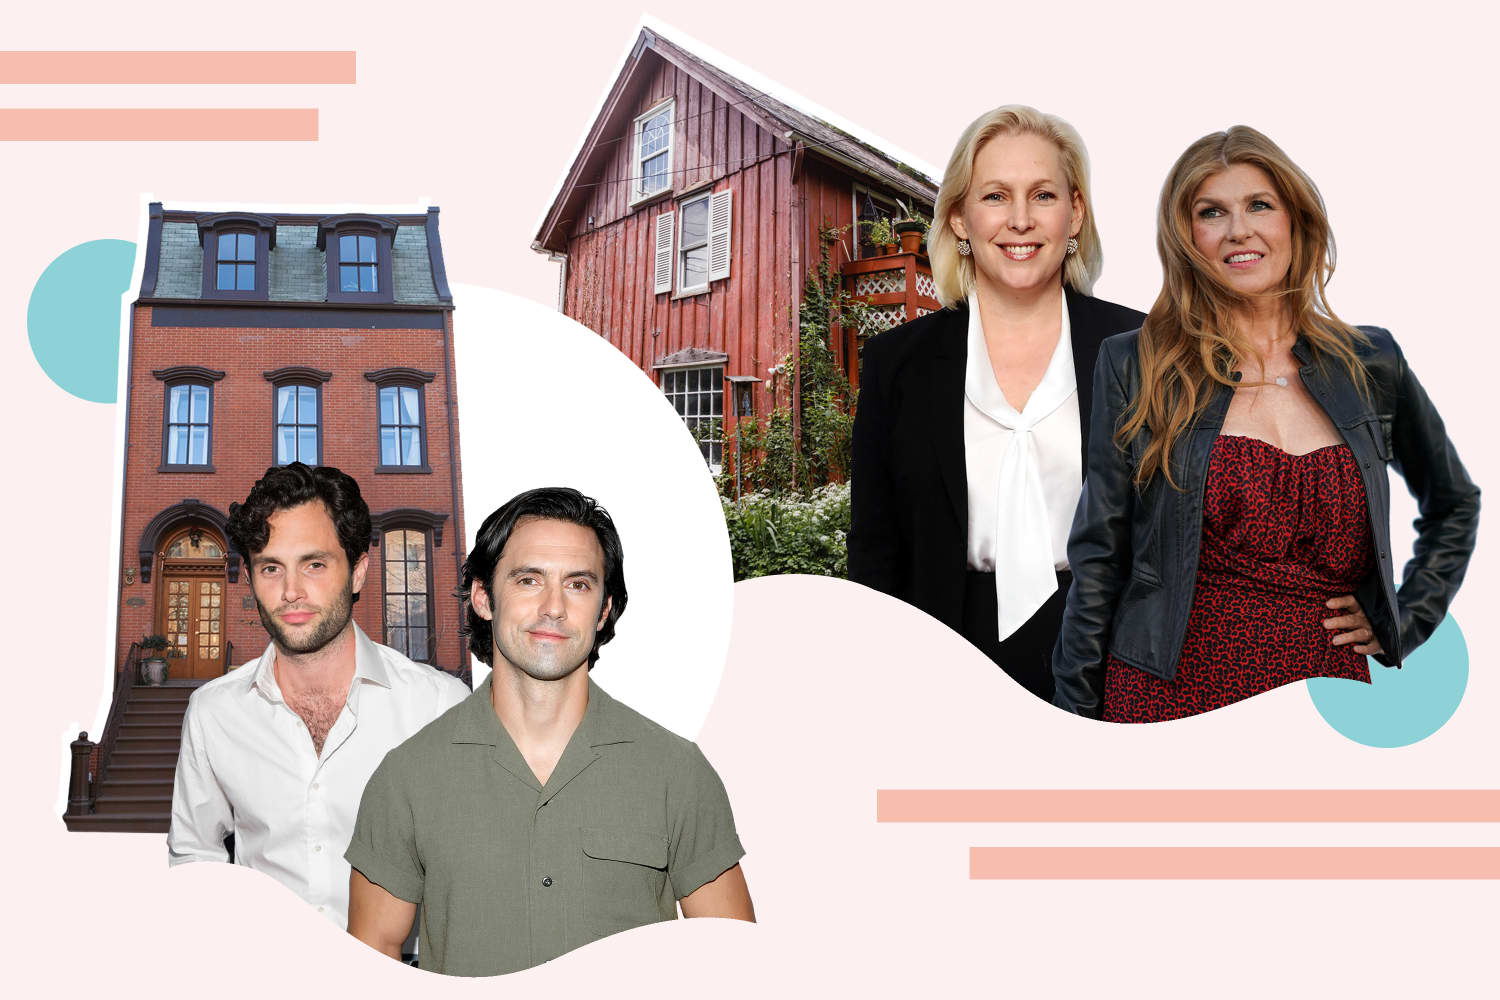 7 Celebrities You Never Knew Were Roommates